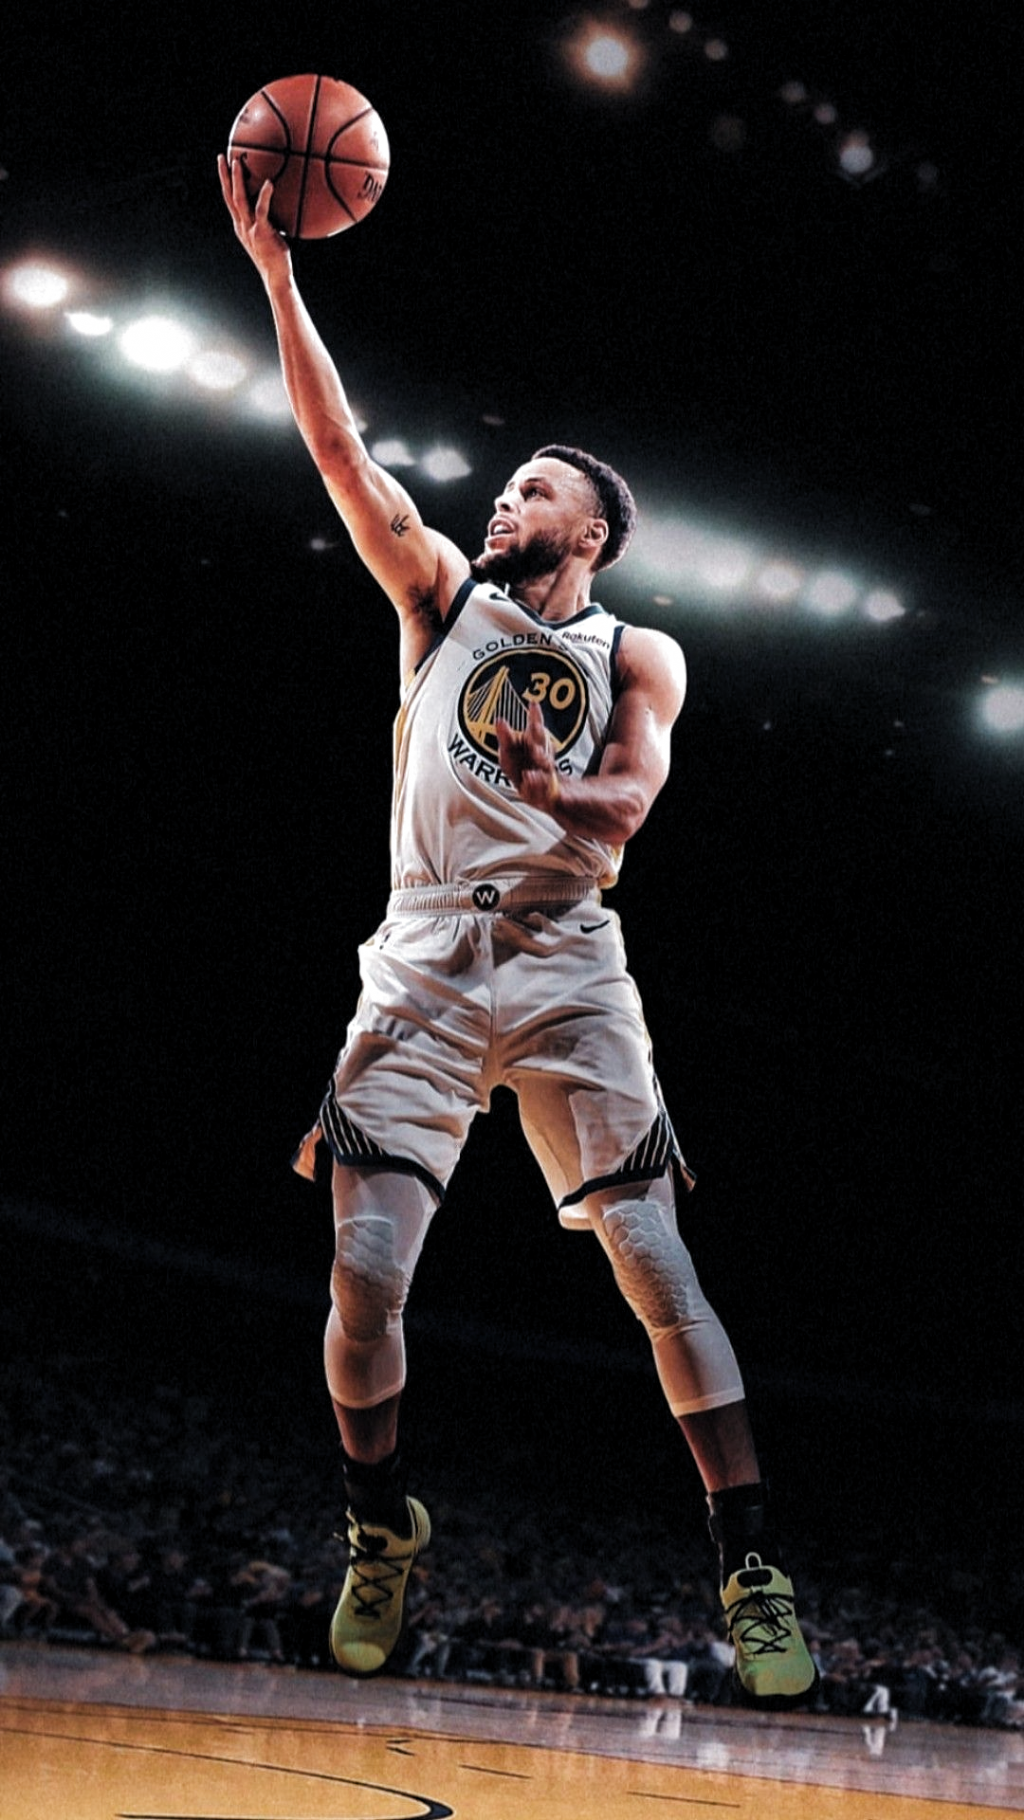 Pin By Baptista Joana On Bas Stephen Curry Wallpaper Stephen Curry Basketball Curry Nba